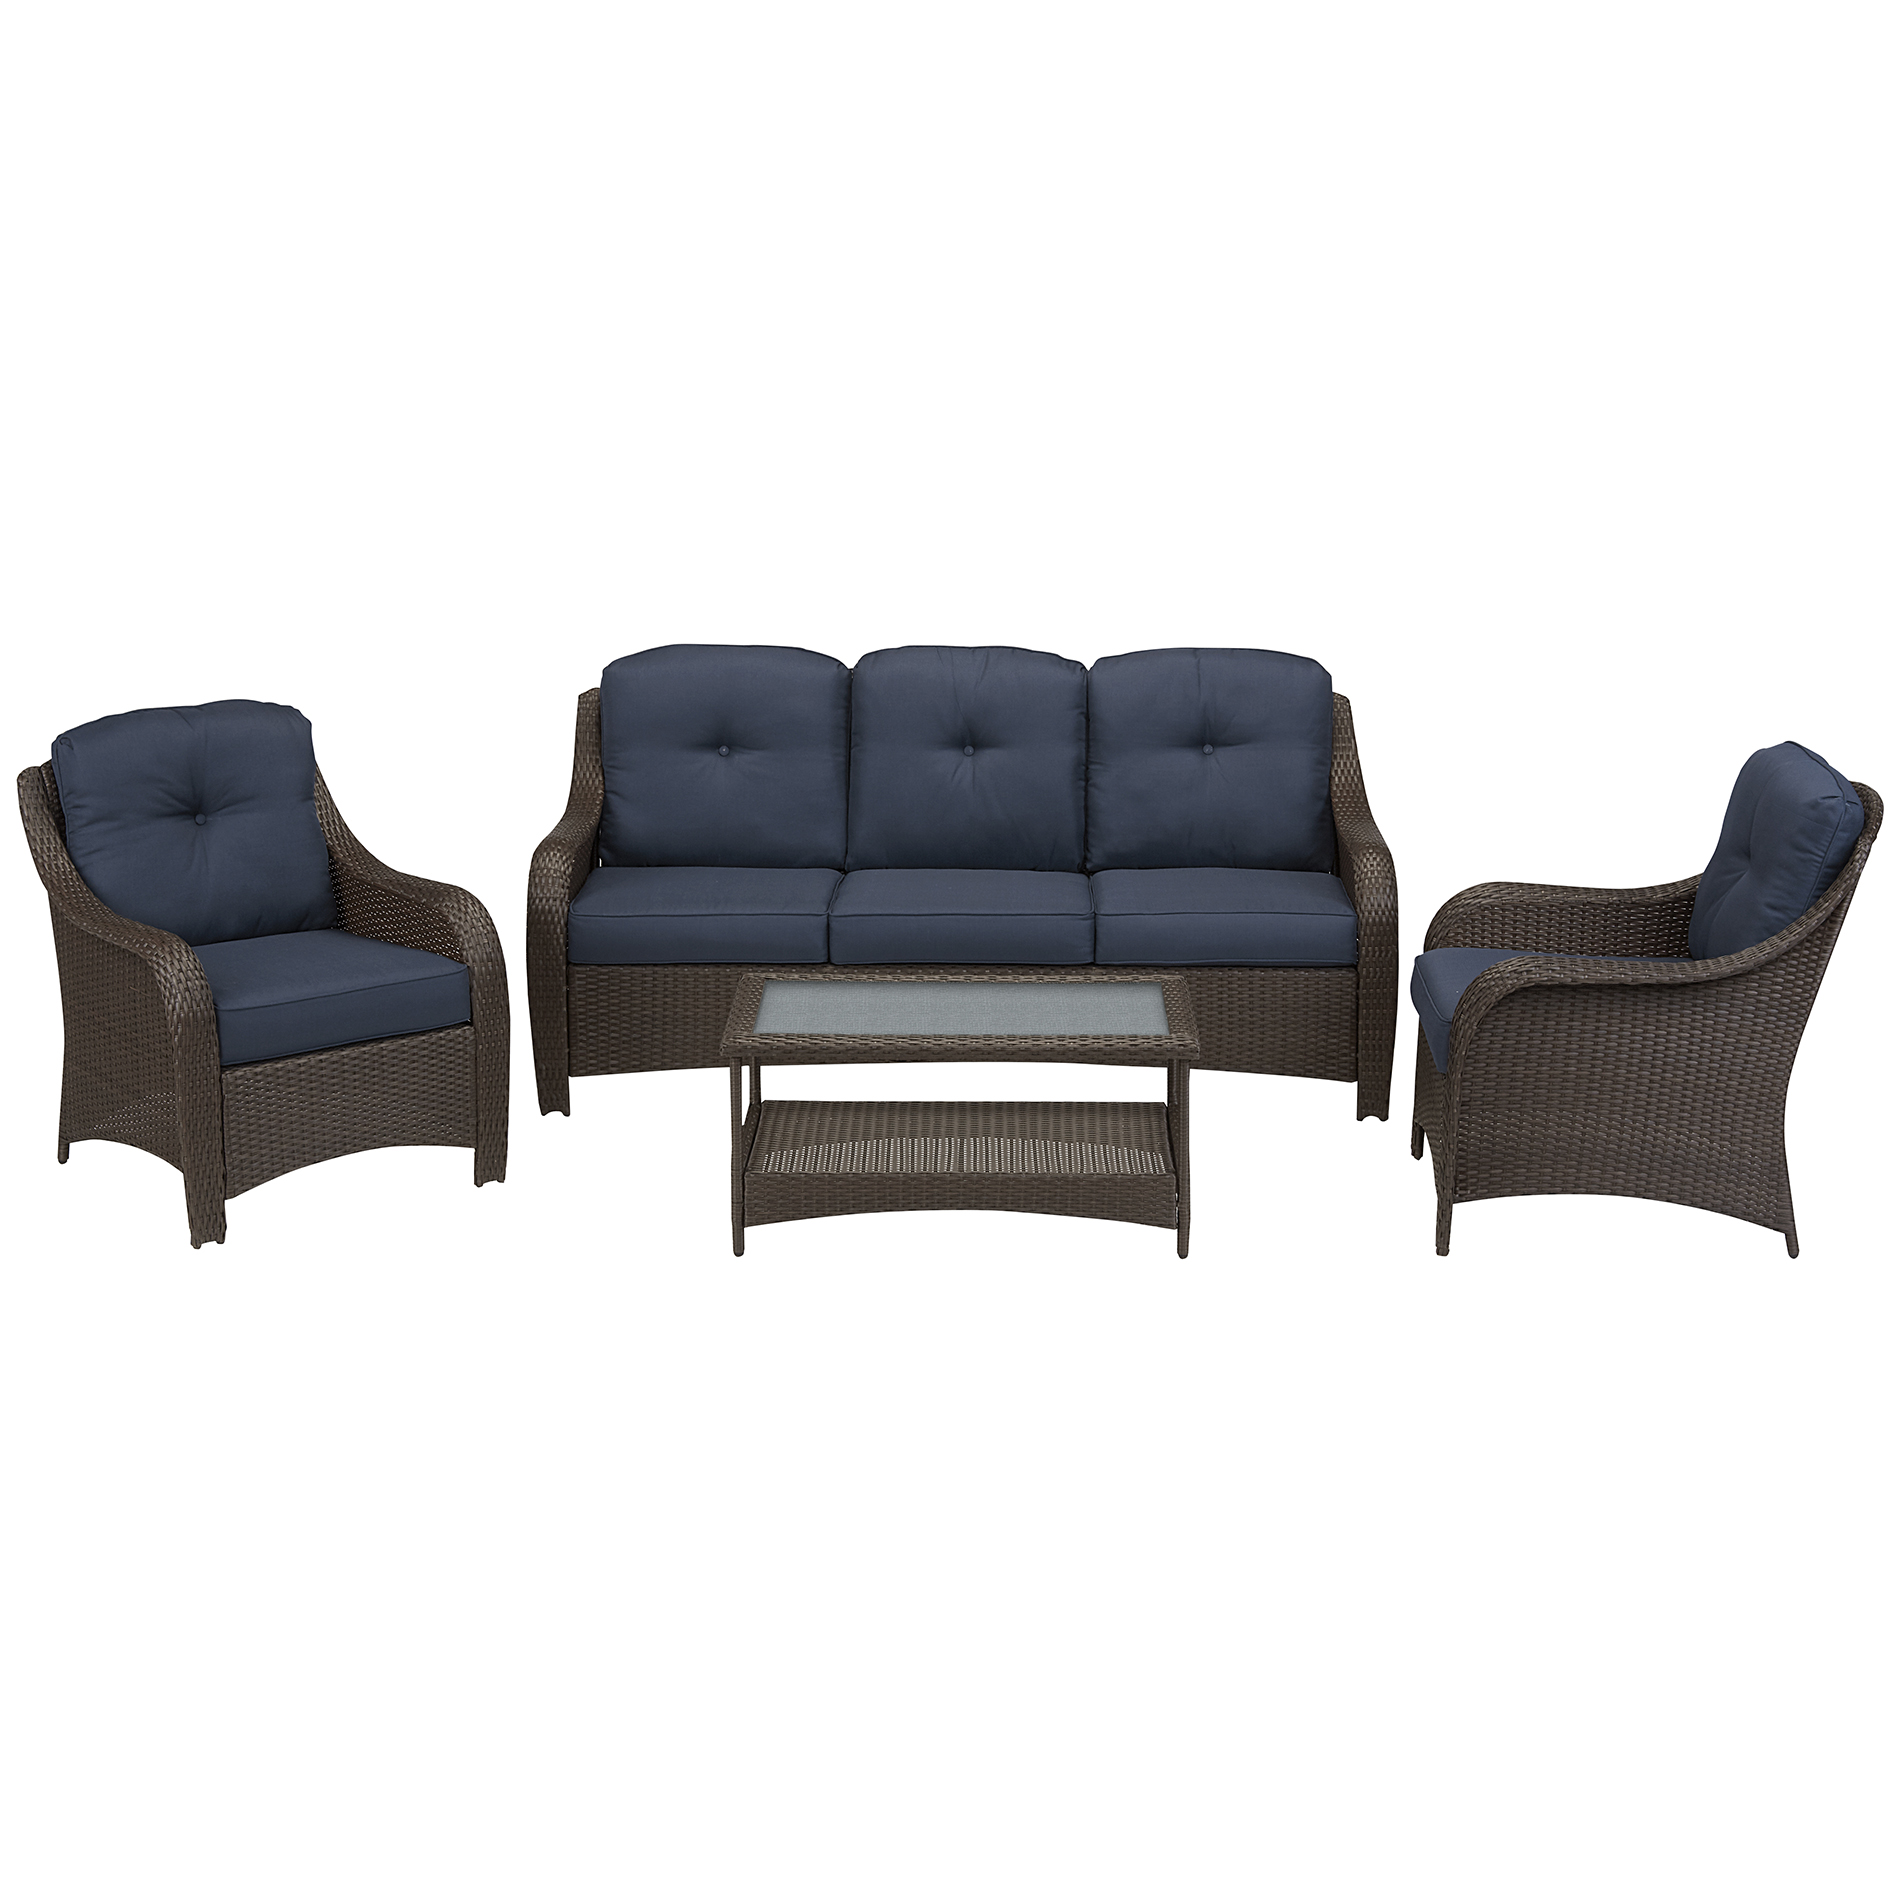 Grand Resort Summerfield 4 Pc. Seating Set- Denim